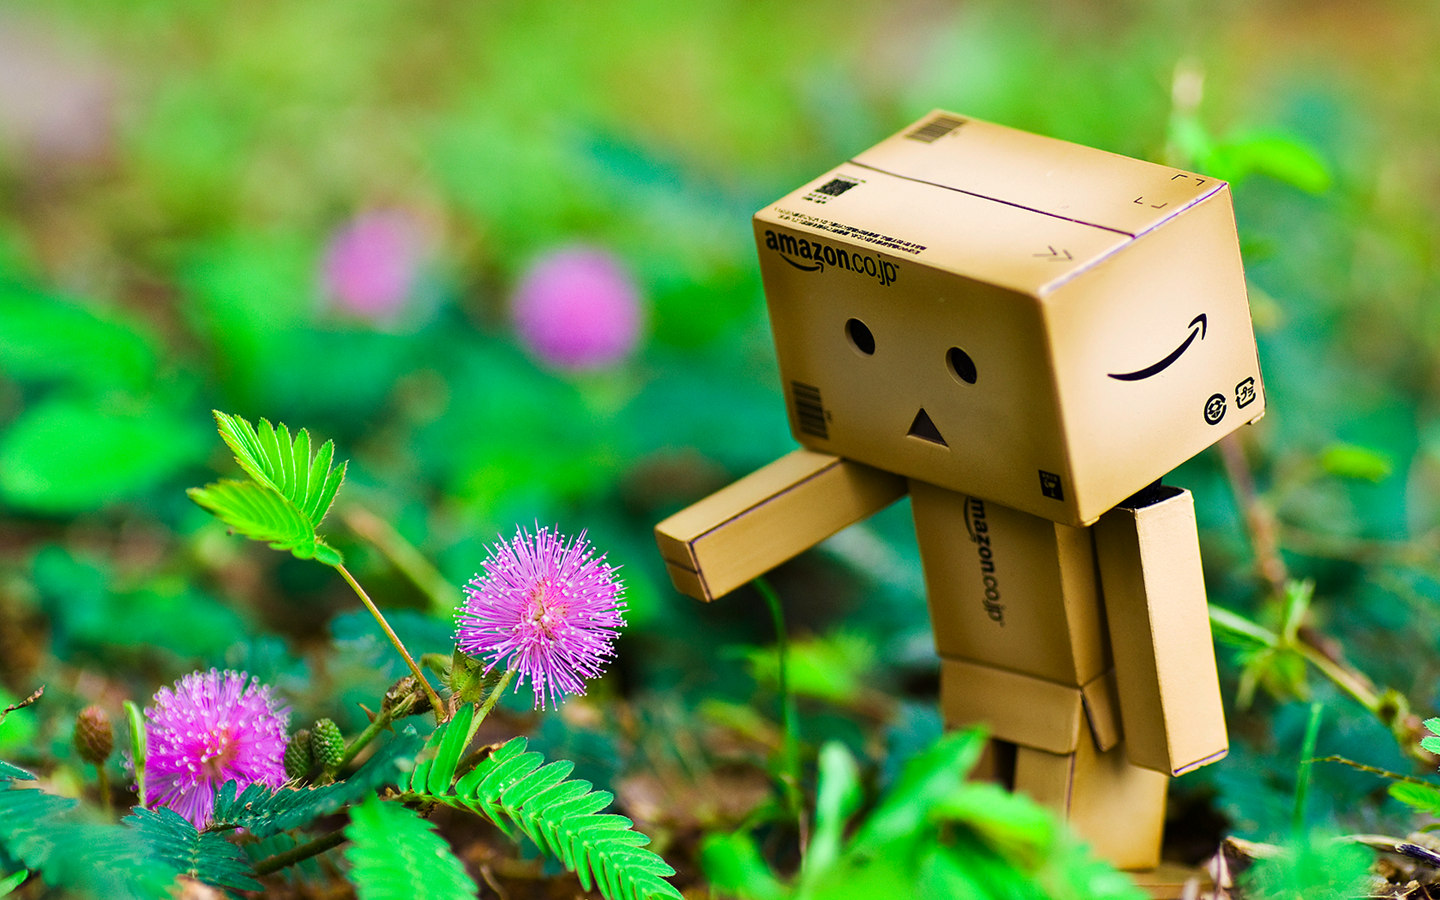 Danbo_Danboard_photo_262144